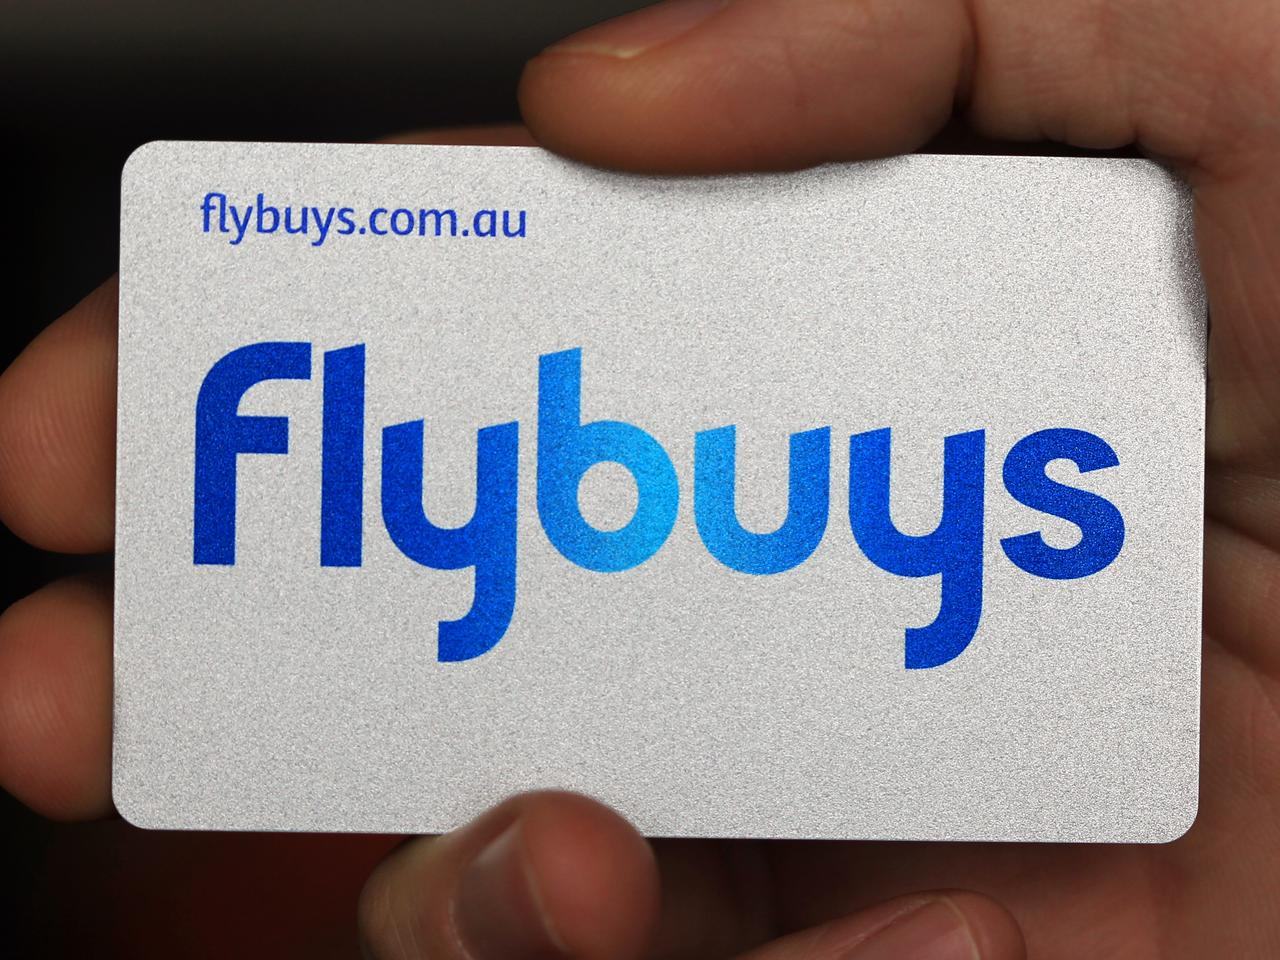 flybuys in hand